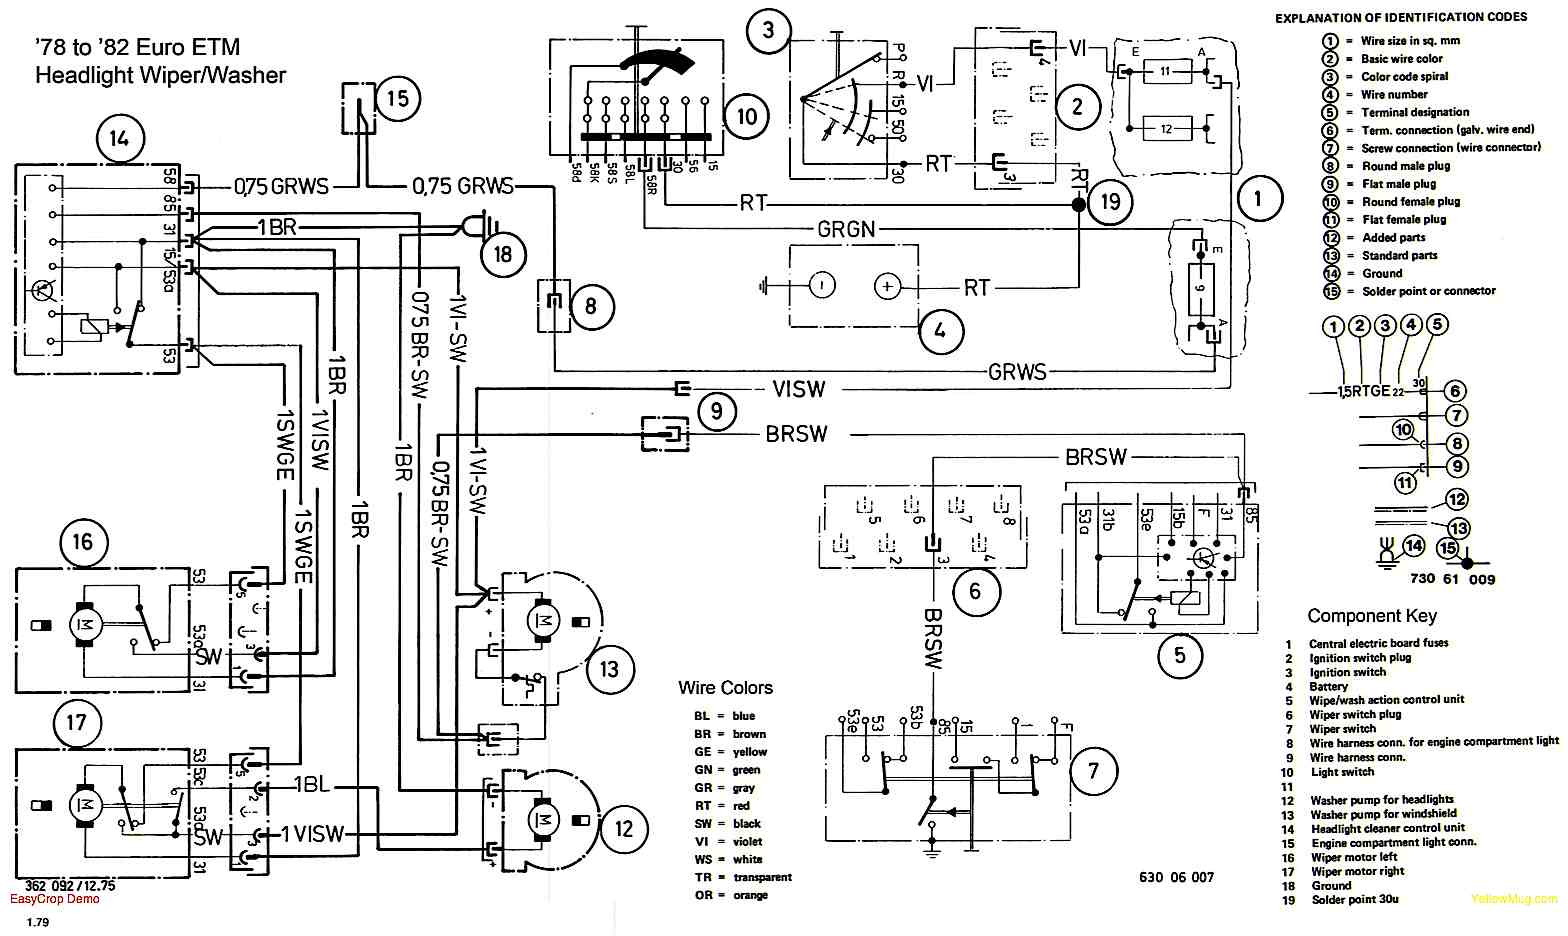 bmw wire diagram electrical diagram schematics rh zavoral genealogy com